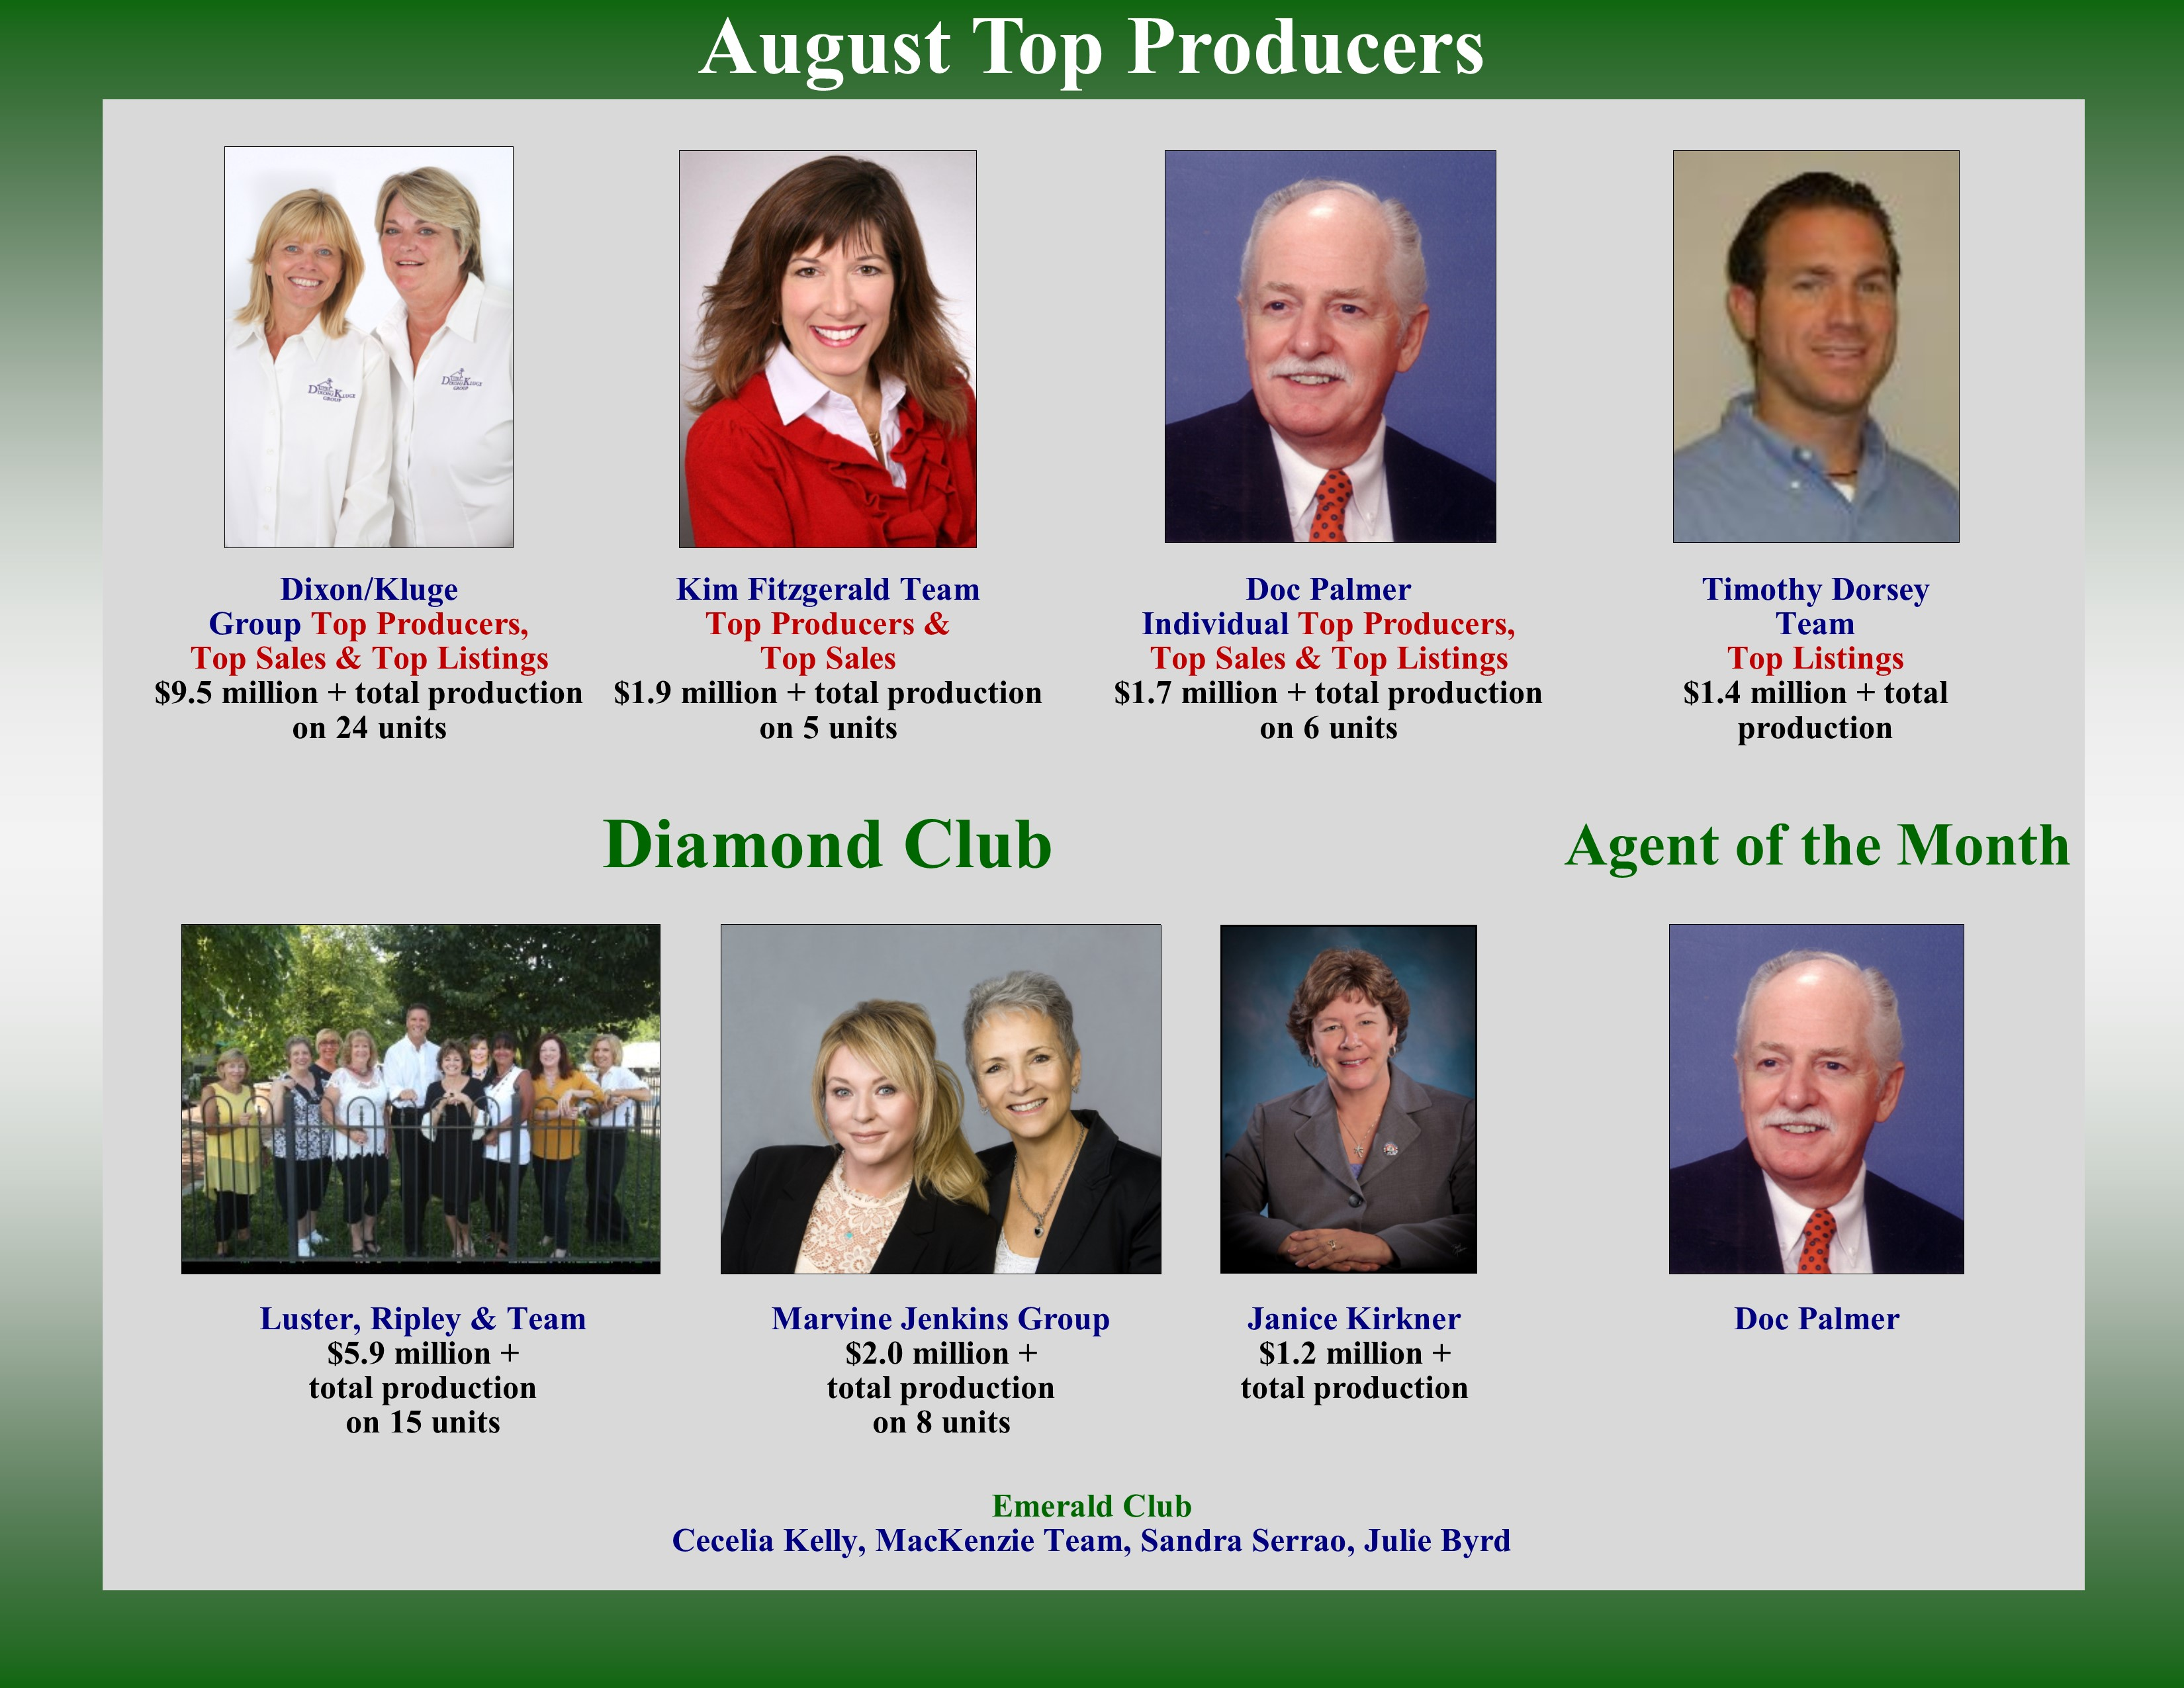 August Top Producers